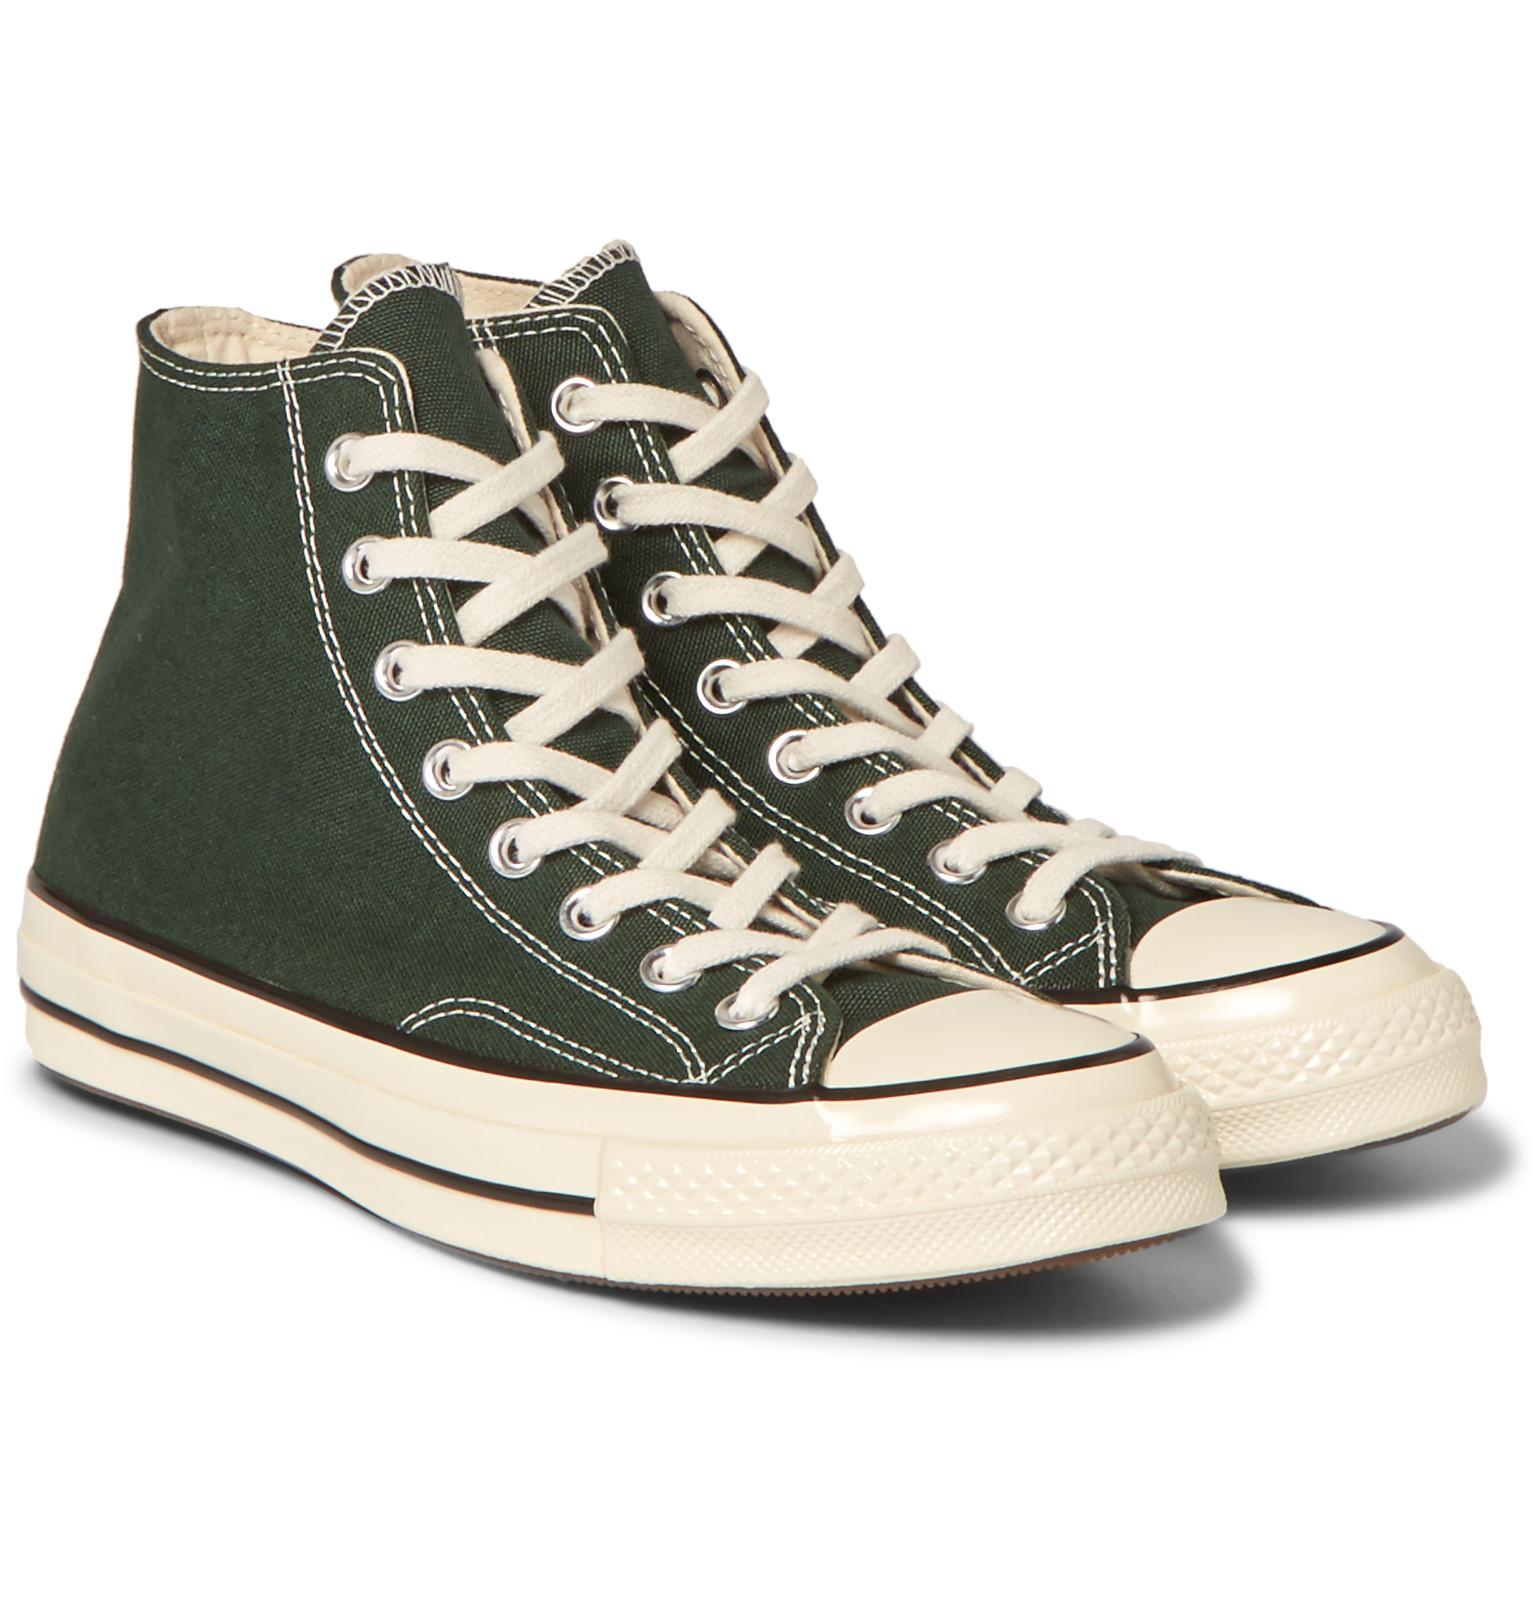 1c4d8f2d35fd Lyst - Converse 1970s Chuck Taylor All Star Canvas High-top Sneakers ...